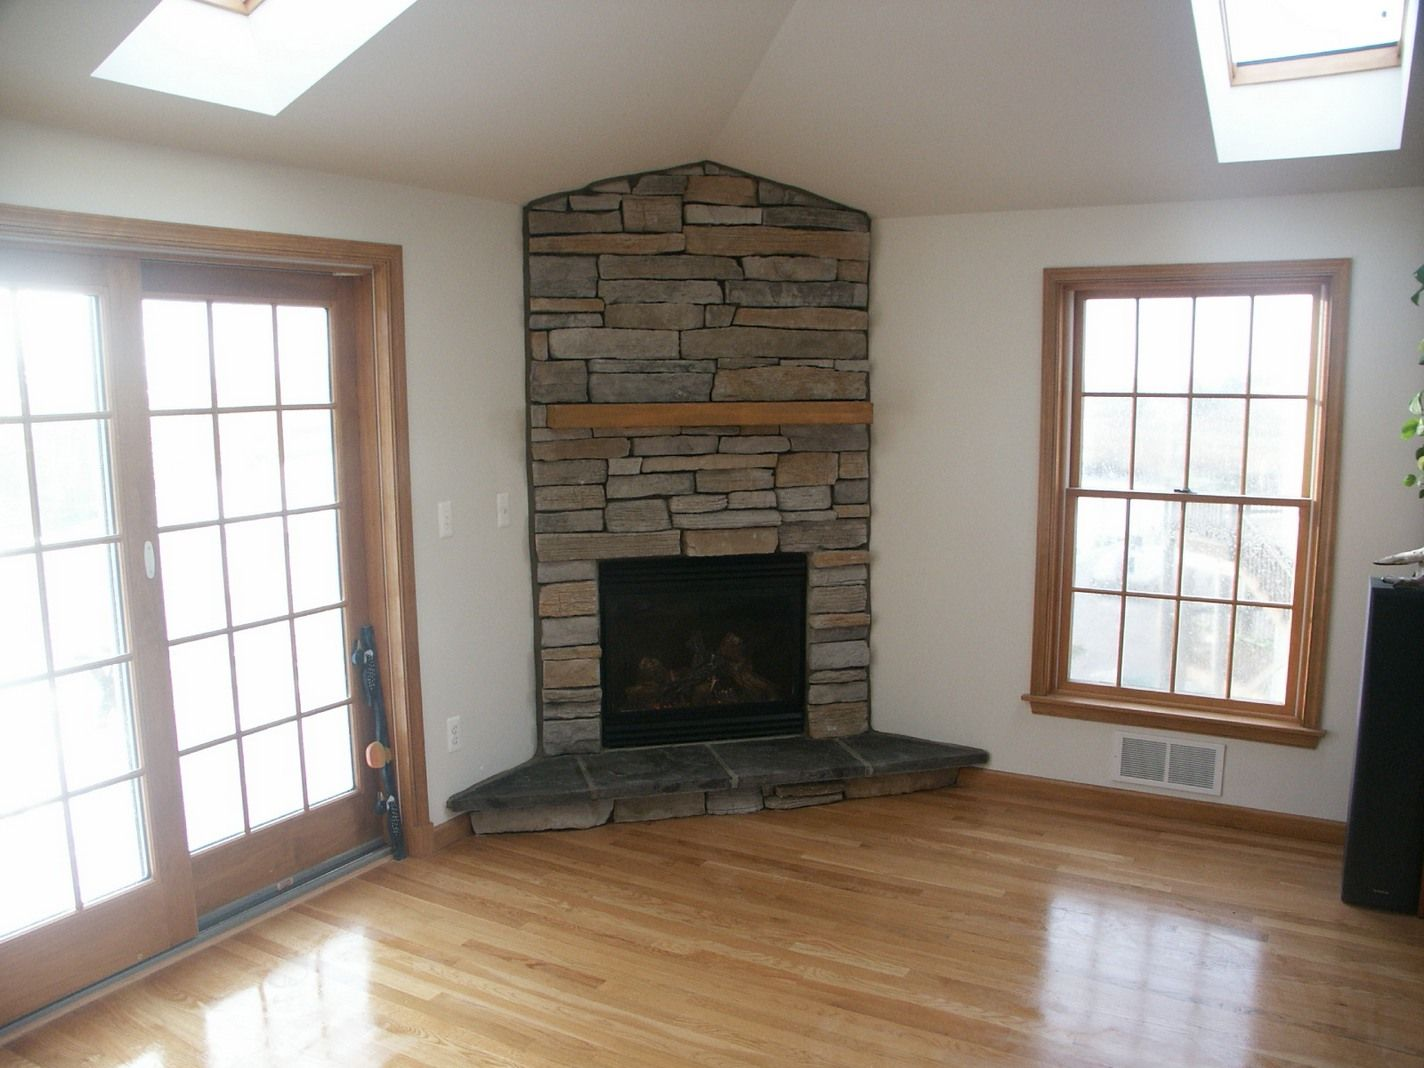 stonecornerfireplaces contemporary corner stone fireplaces designs ideas corner fireplaces - Corner Fireplace Design Ideas